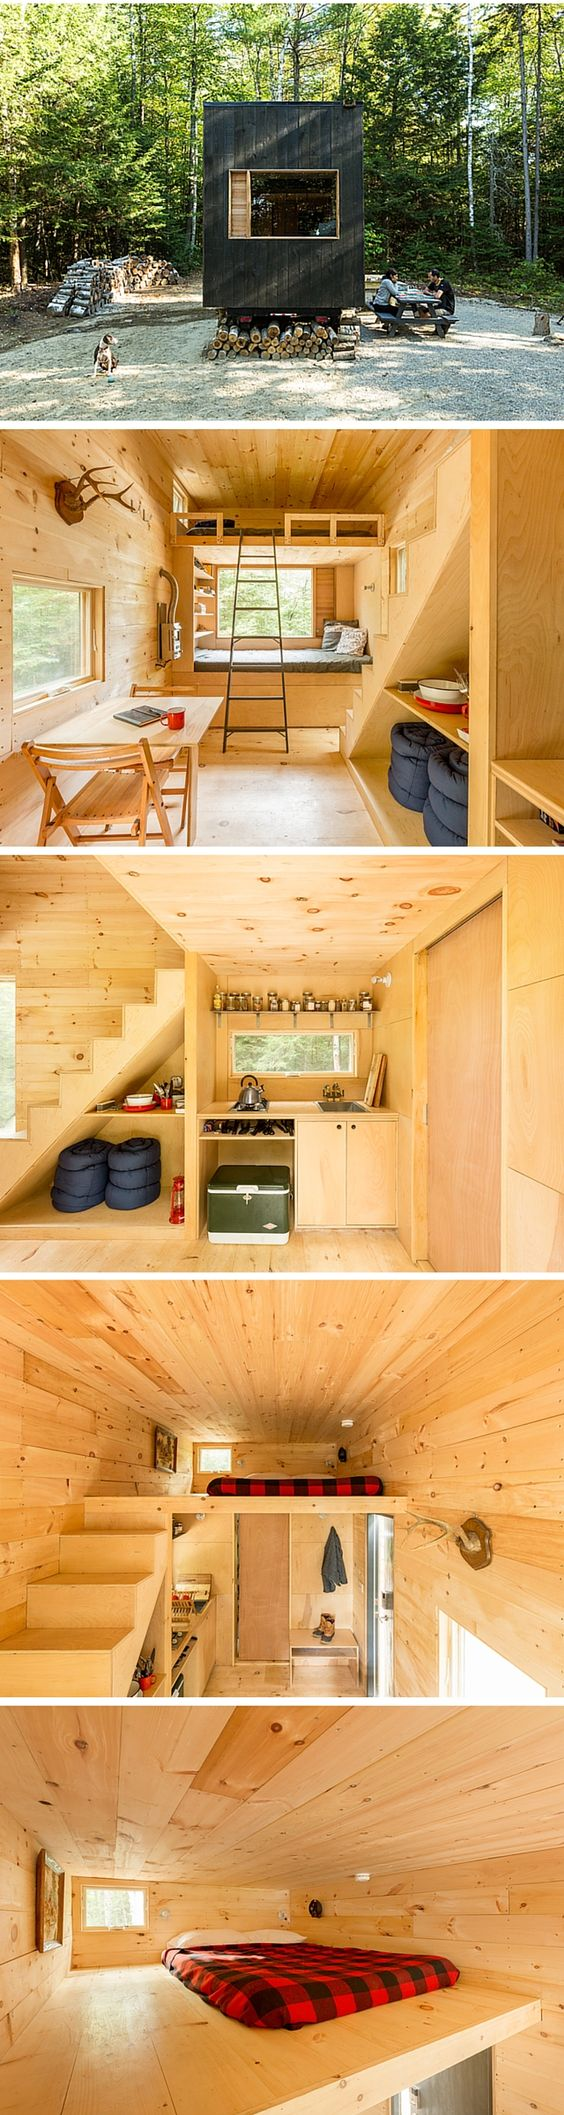 The Ovida tiny house a 160 sq ft vacation rental at the Getaway